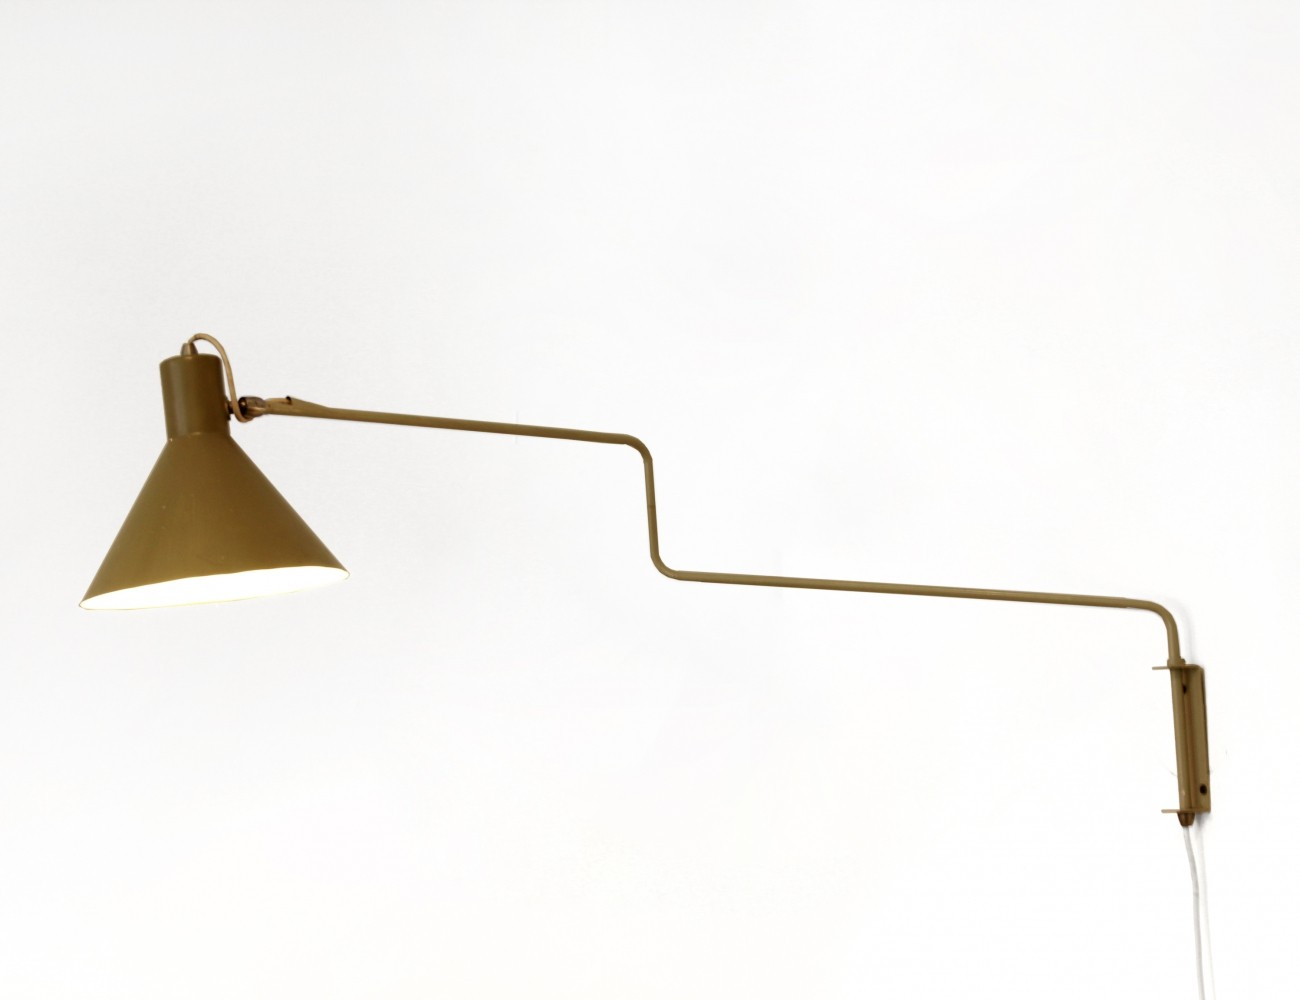 Green swing arm wall lamp model 7058 by J. Hoogervorst for Anvia